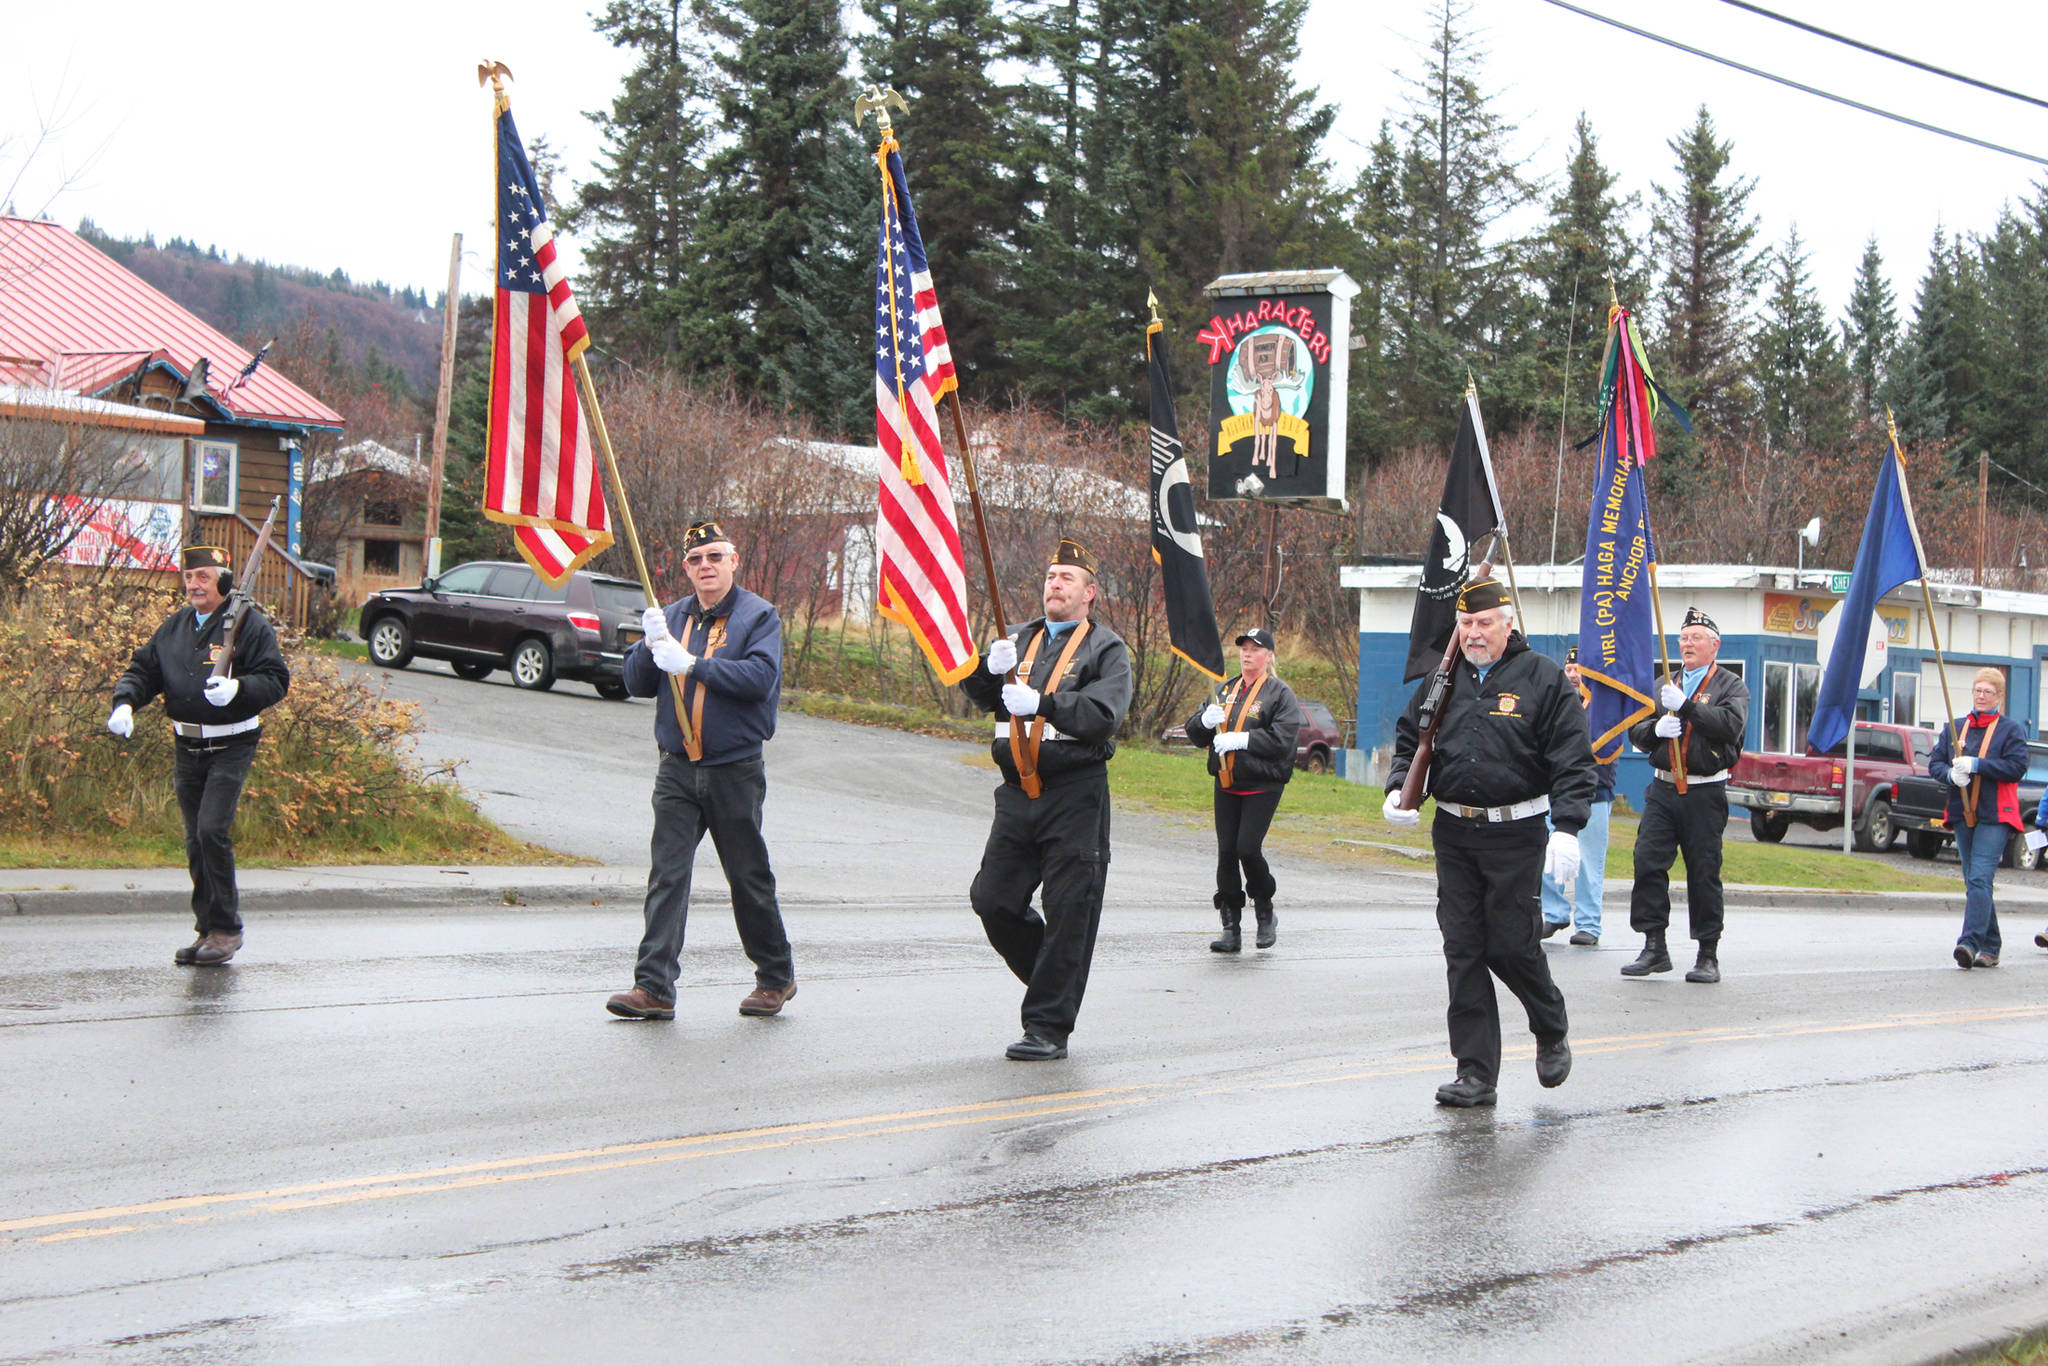 Members of veterans organizations march down Pioneer Avenue during in a Veterans Day parade Sunday, Nov. 11, 2018 in Homer, Alaska. (Photo by Megan Pacer/Homer News)